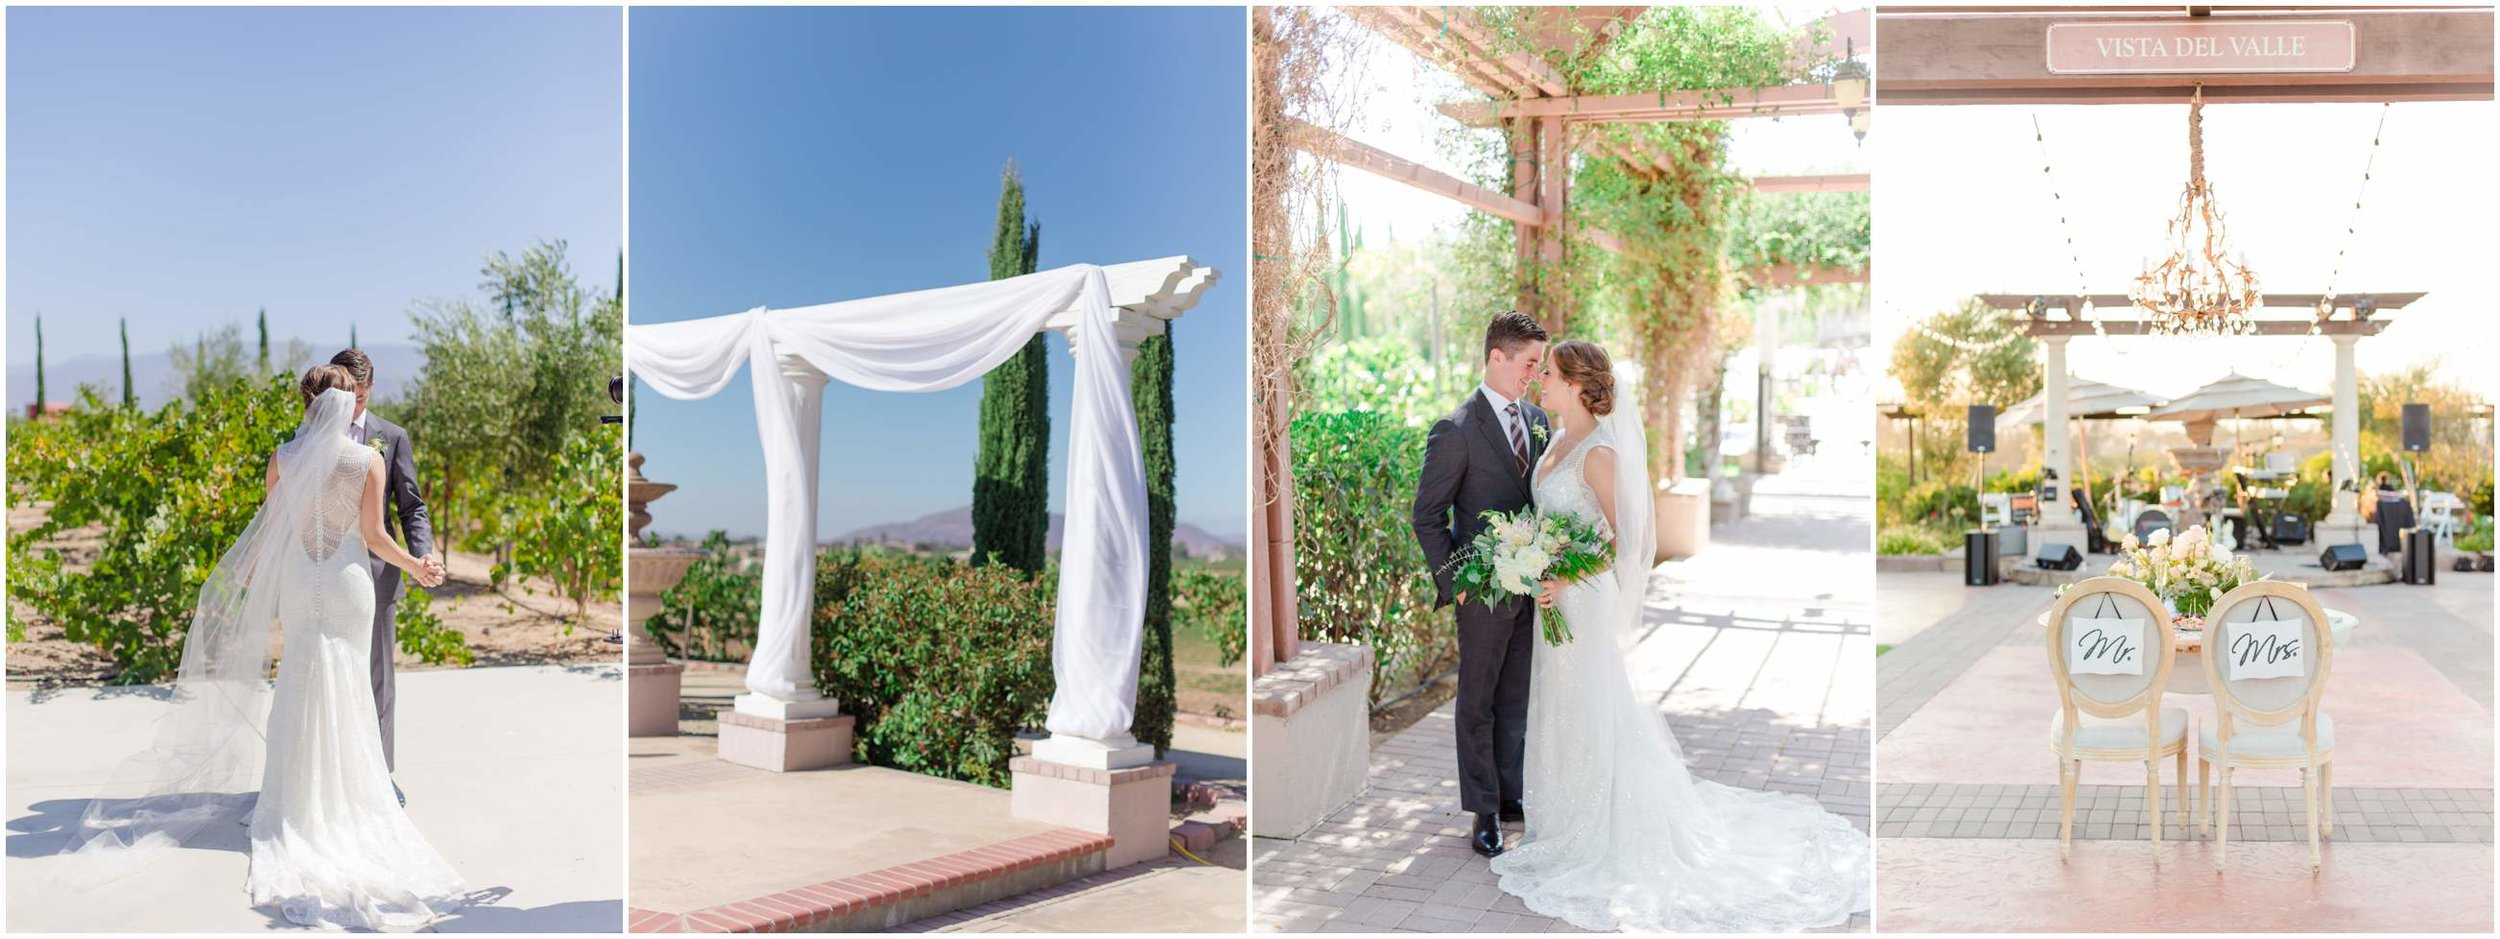 Mount Palomar Winery Wedding | Temecula Vineyard Wedding in San Diego